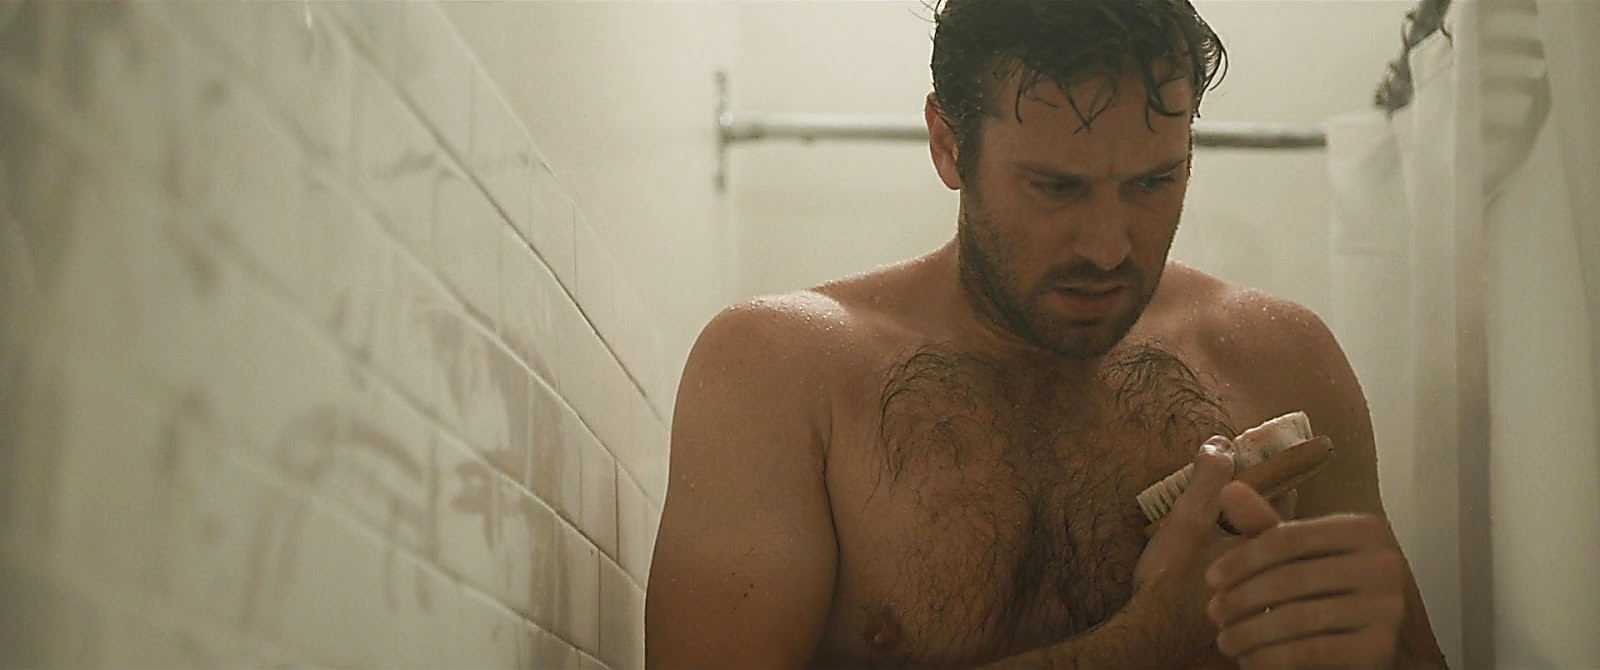 Armie Hammer sexy shirtless scene October 18, 2019, 4pm